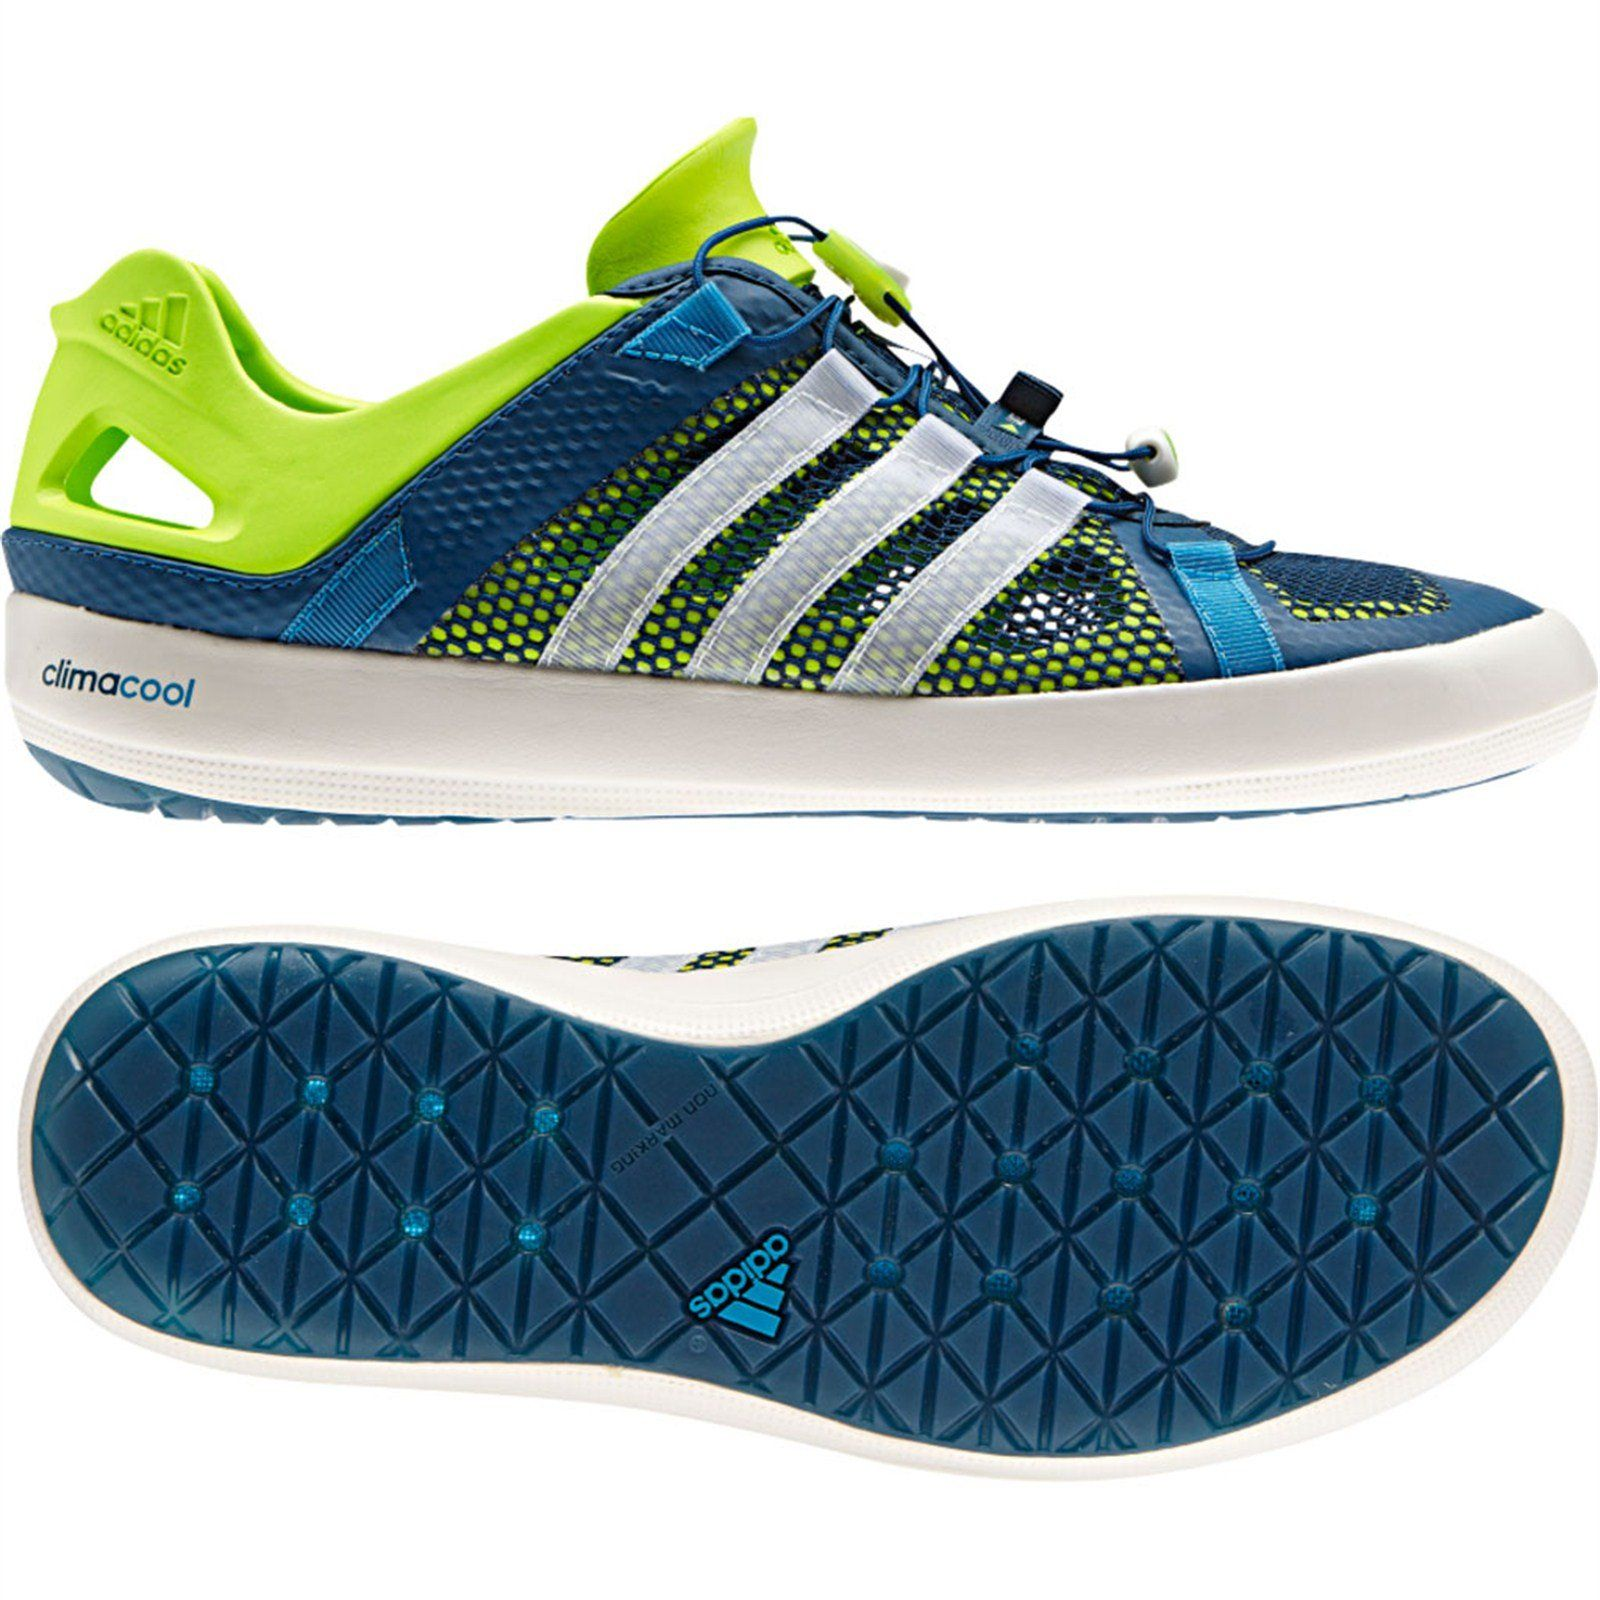 adidas climacool boat breeze shoes